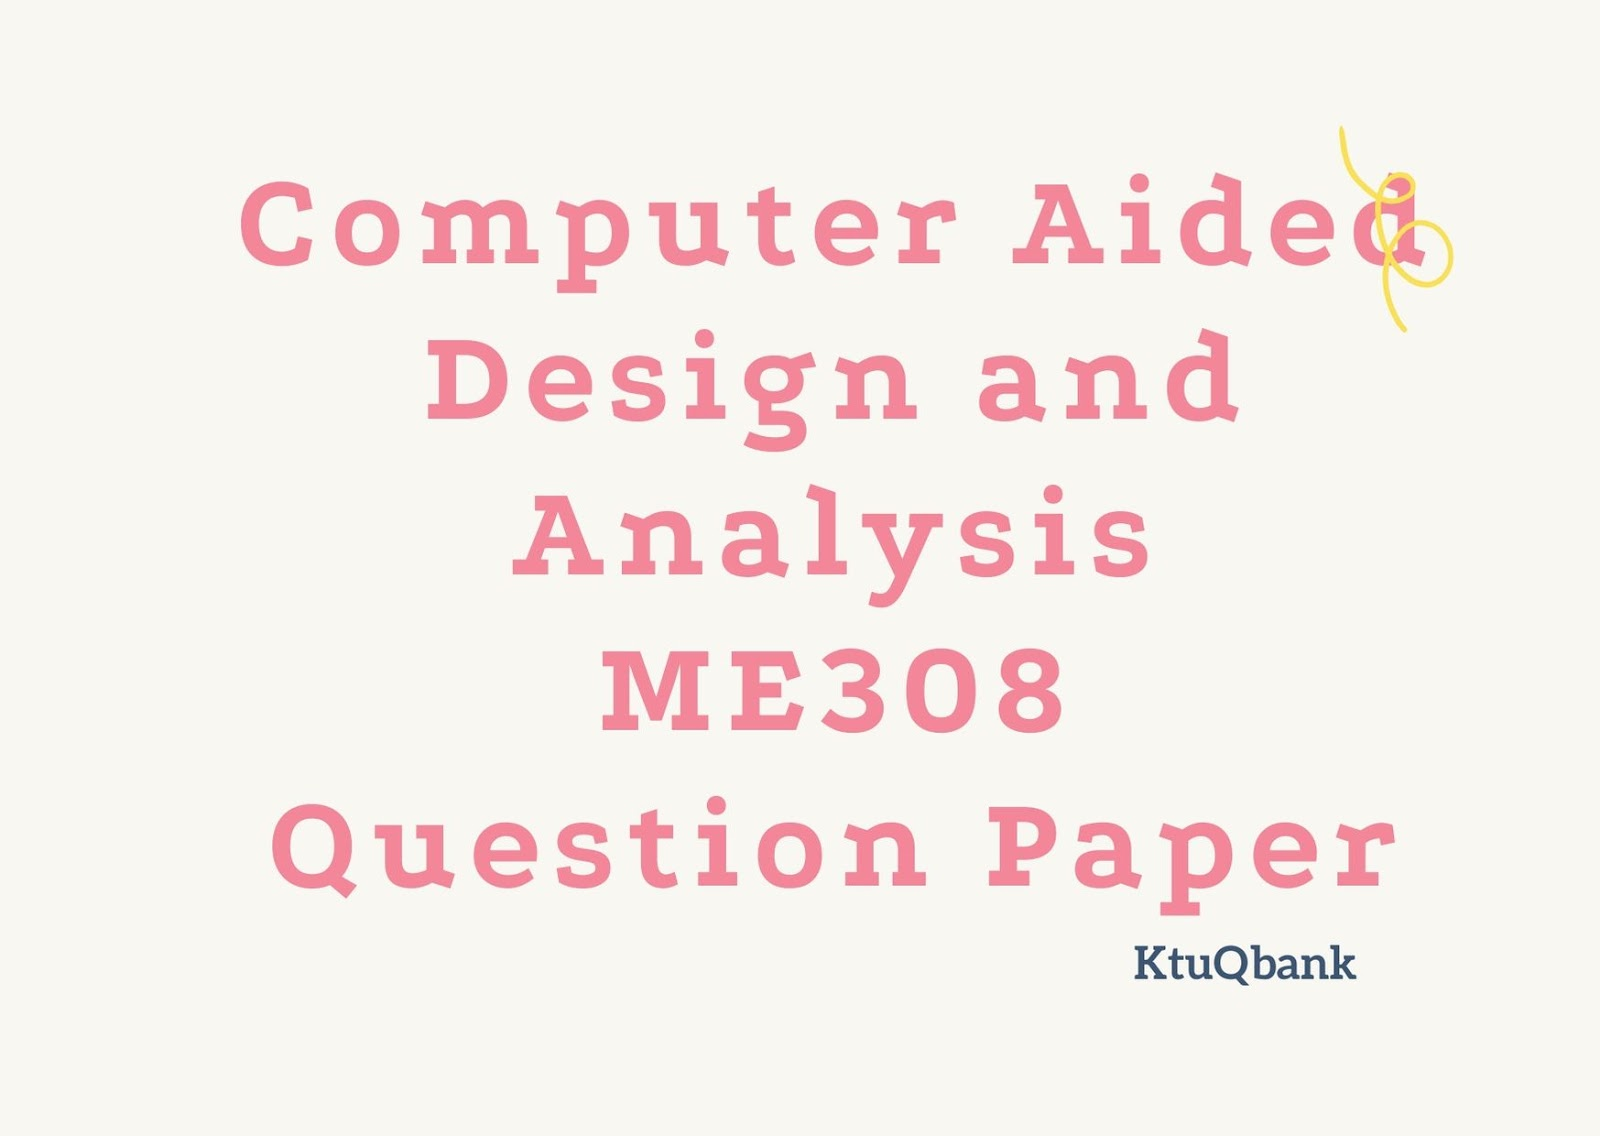 Computer Aided Design and Analysis | ME308 | Question Papers (2015 batch)